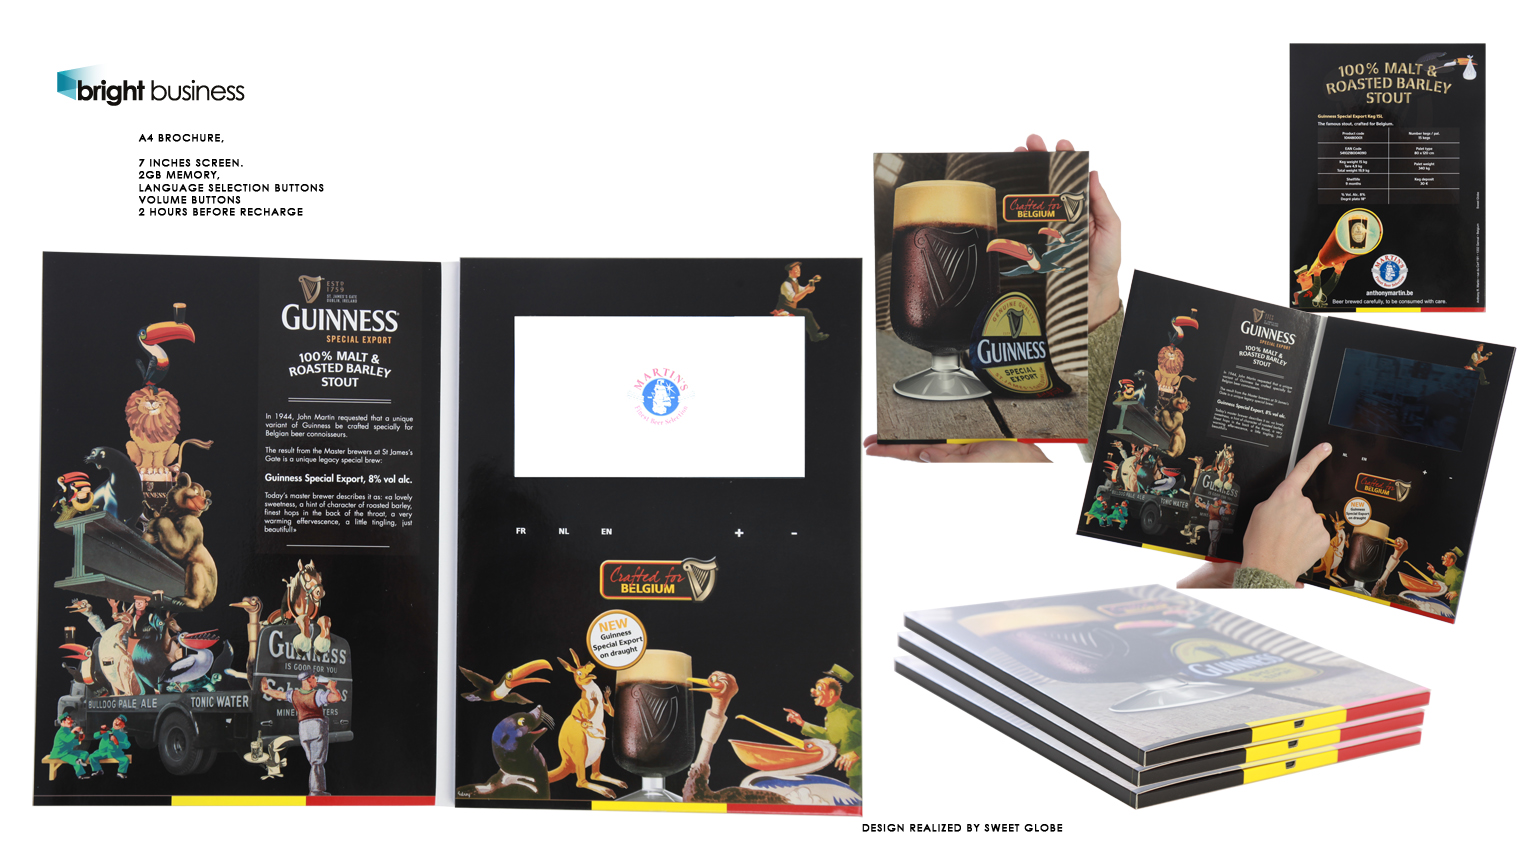 video book guinness